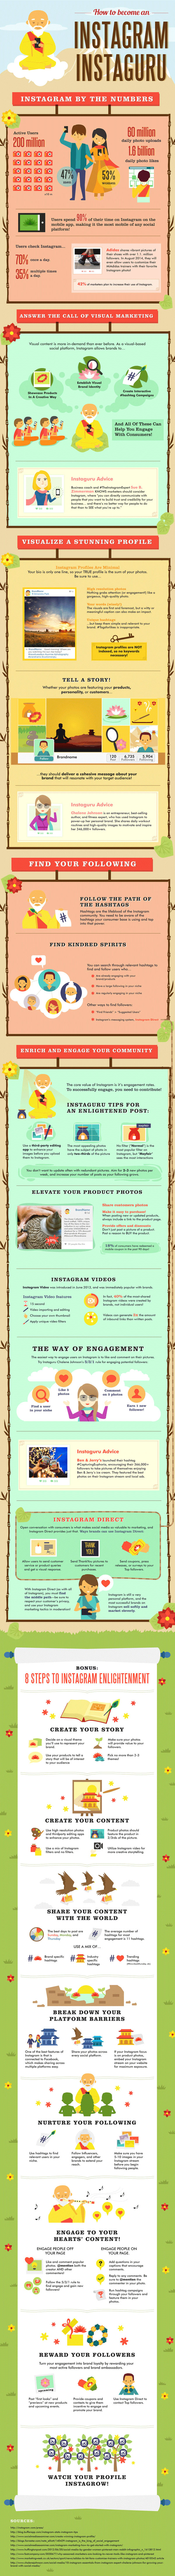 Tactics to Help You Get More Instagram Followers Today